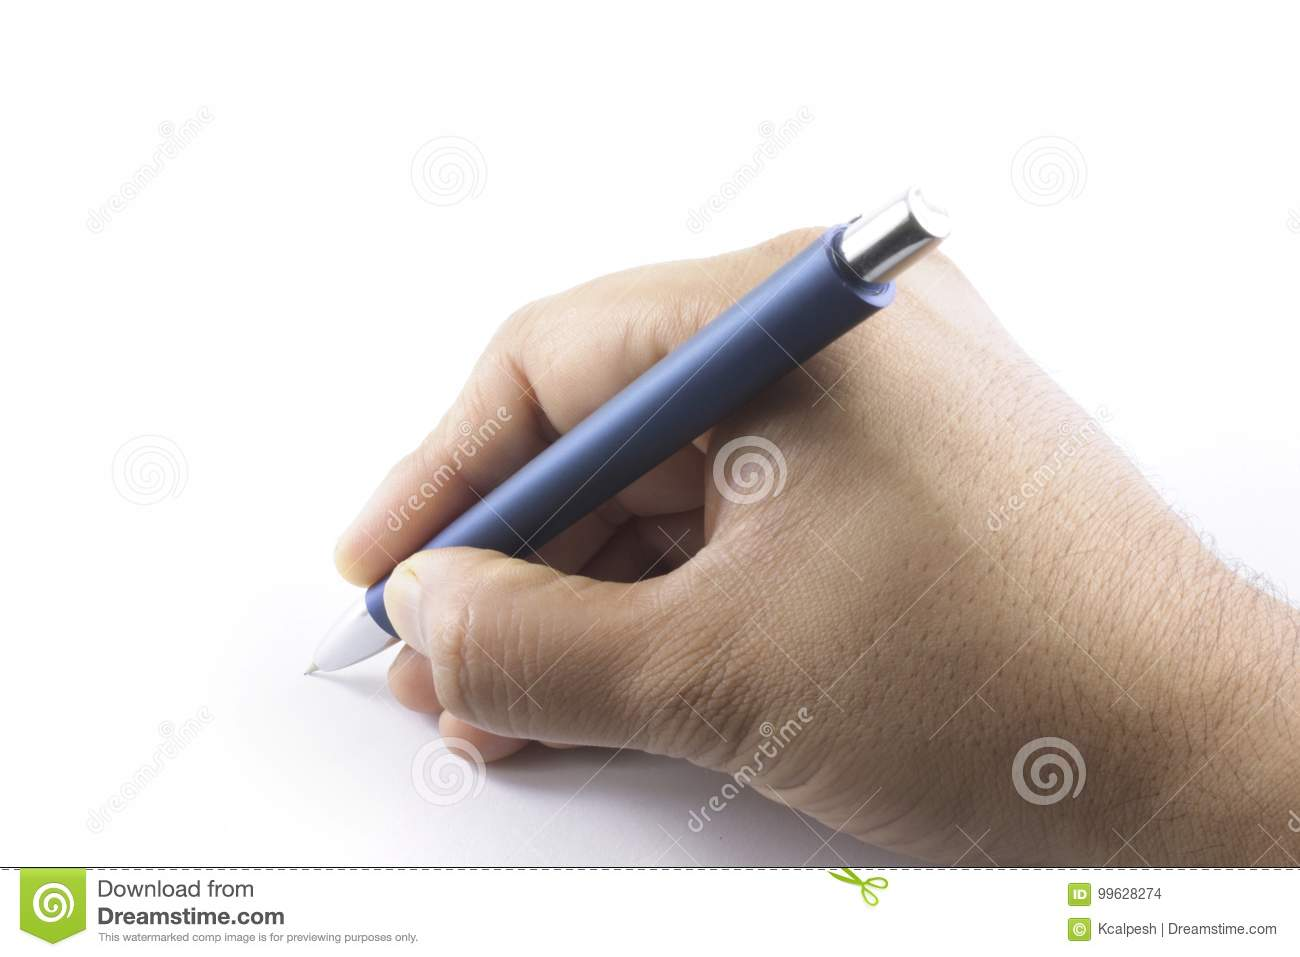 A hand holding a ball point pen